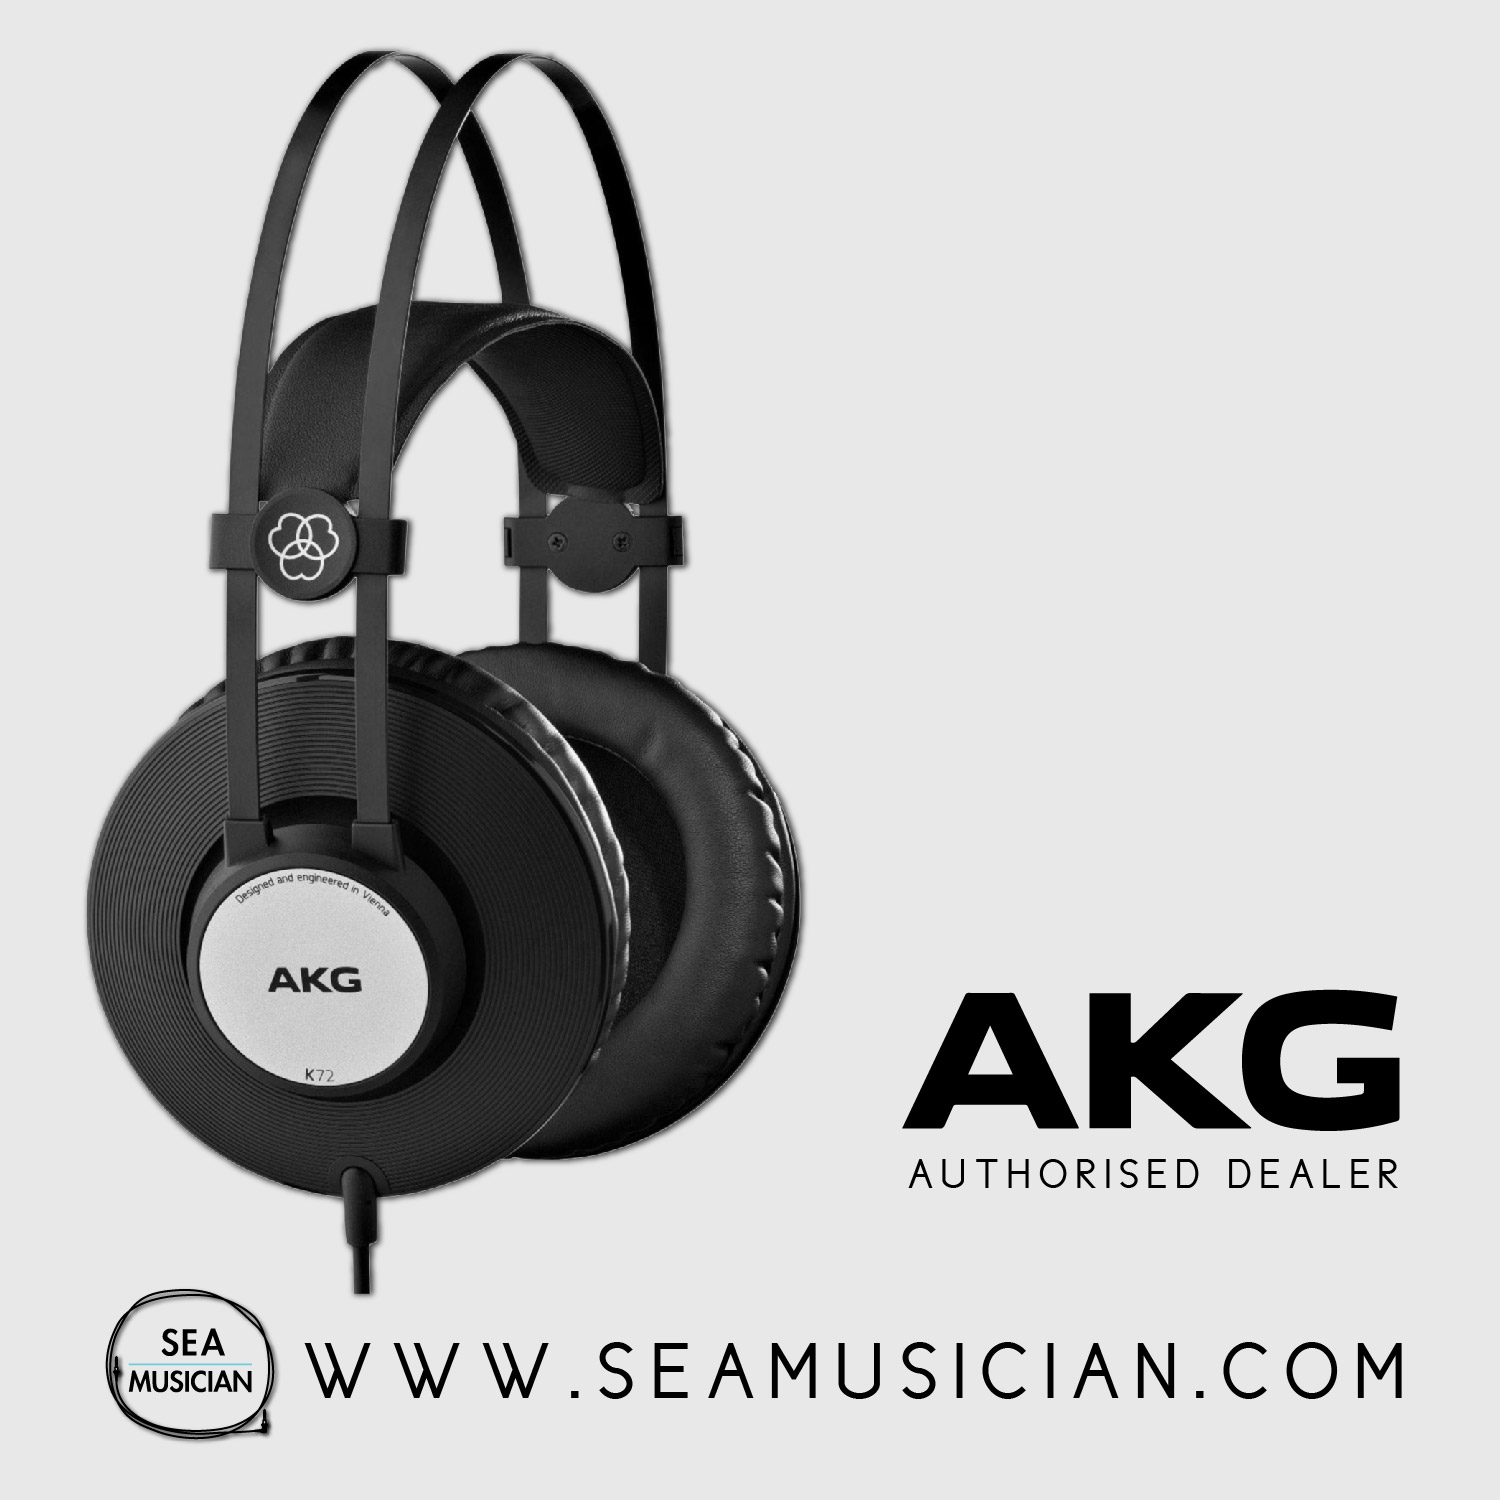 b81060270a7 AKG K72 PRO-AUDIO CLOSED-BACK & OVER-EAR STUDIO HEADPHONES. ‹ ›